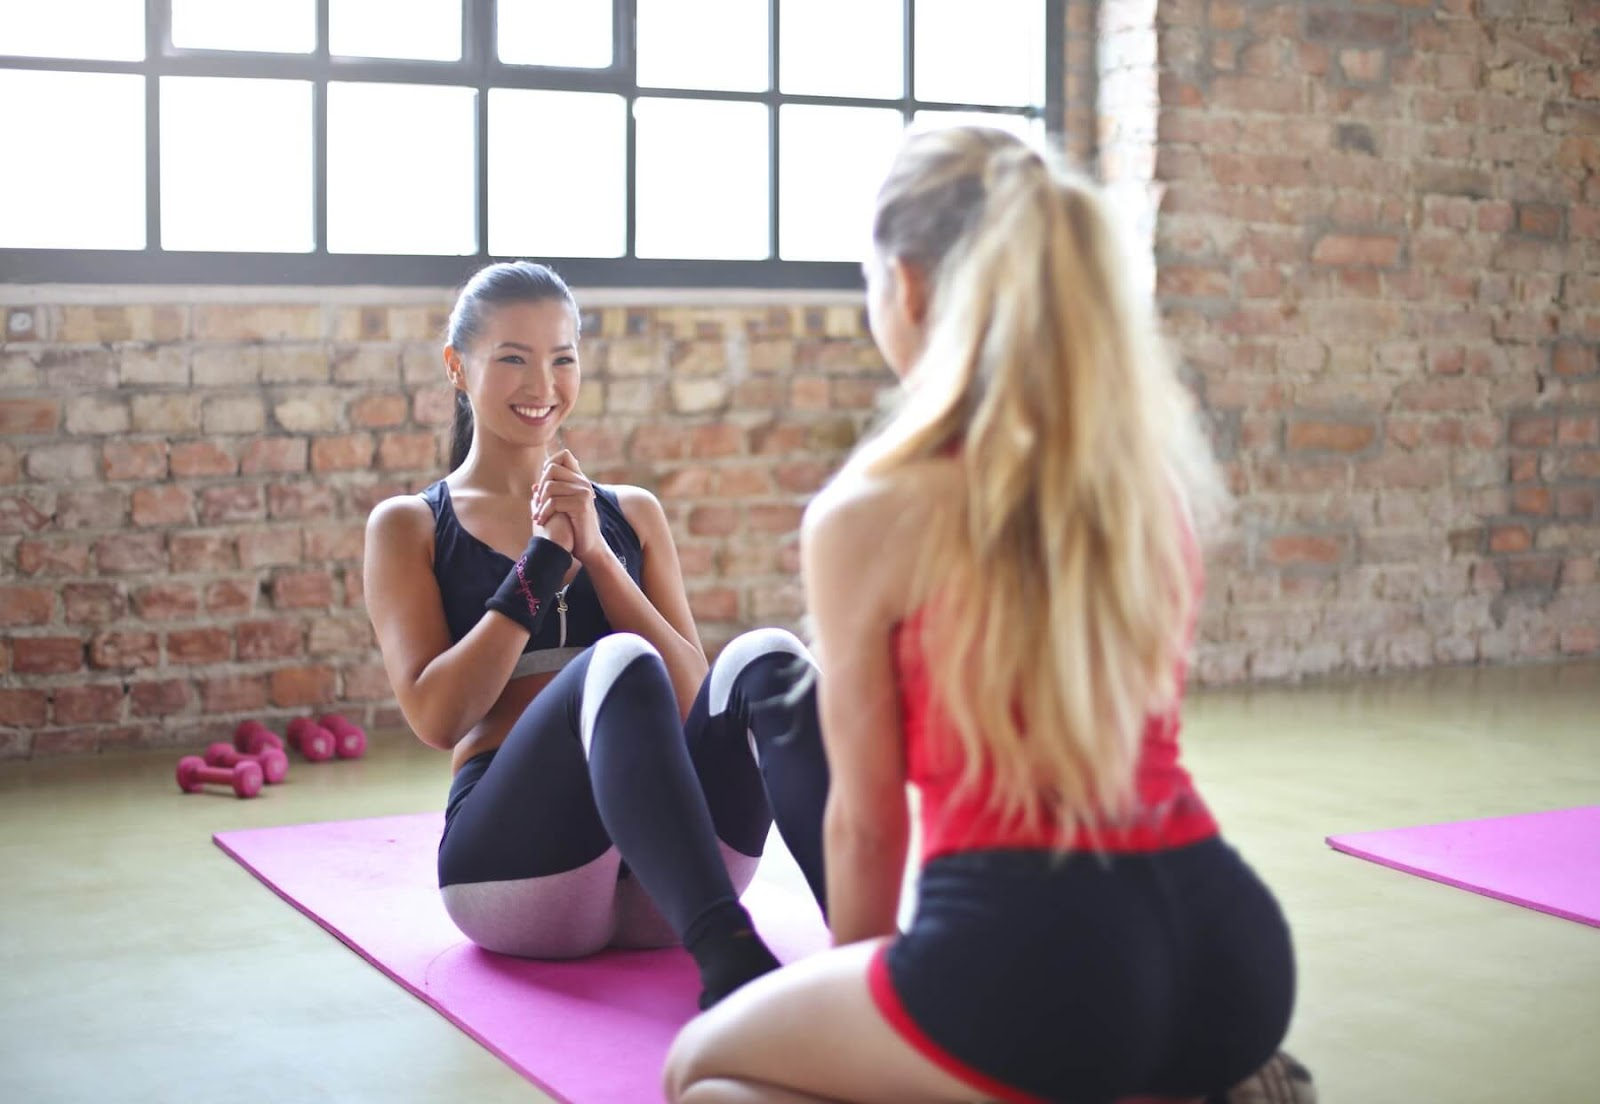 5 Reasons to Take Private Pilates Lessons Before Group Classes